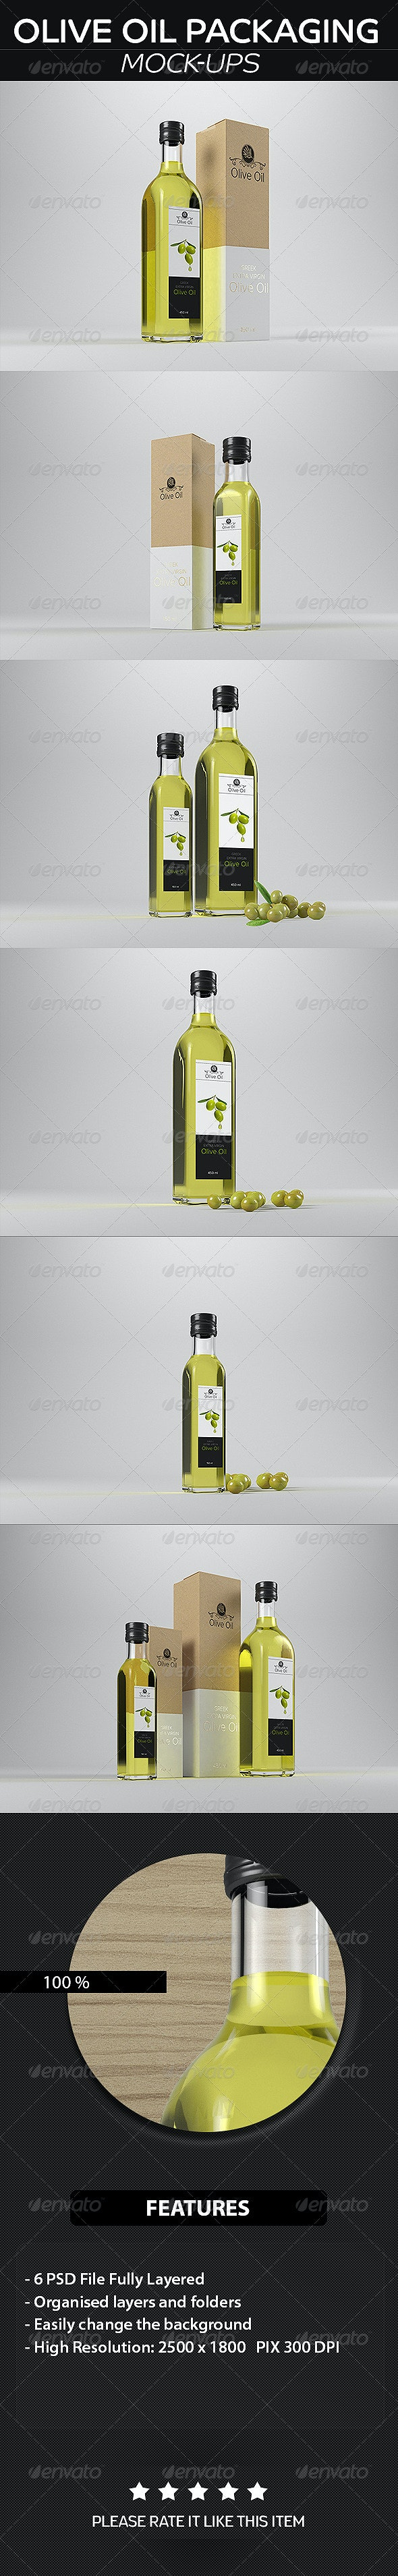 Olive Oil Packaging  Mockup - Food and Drink Packaging